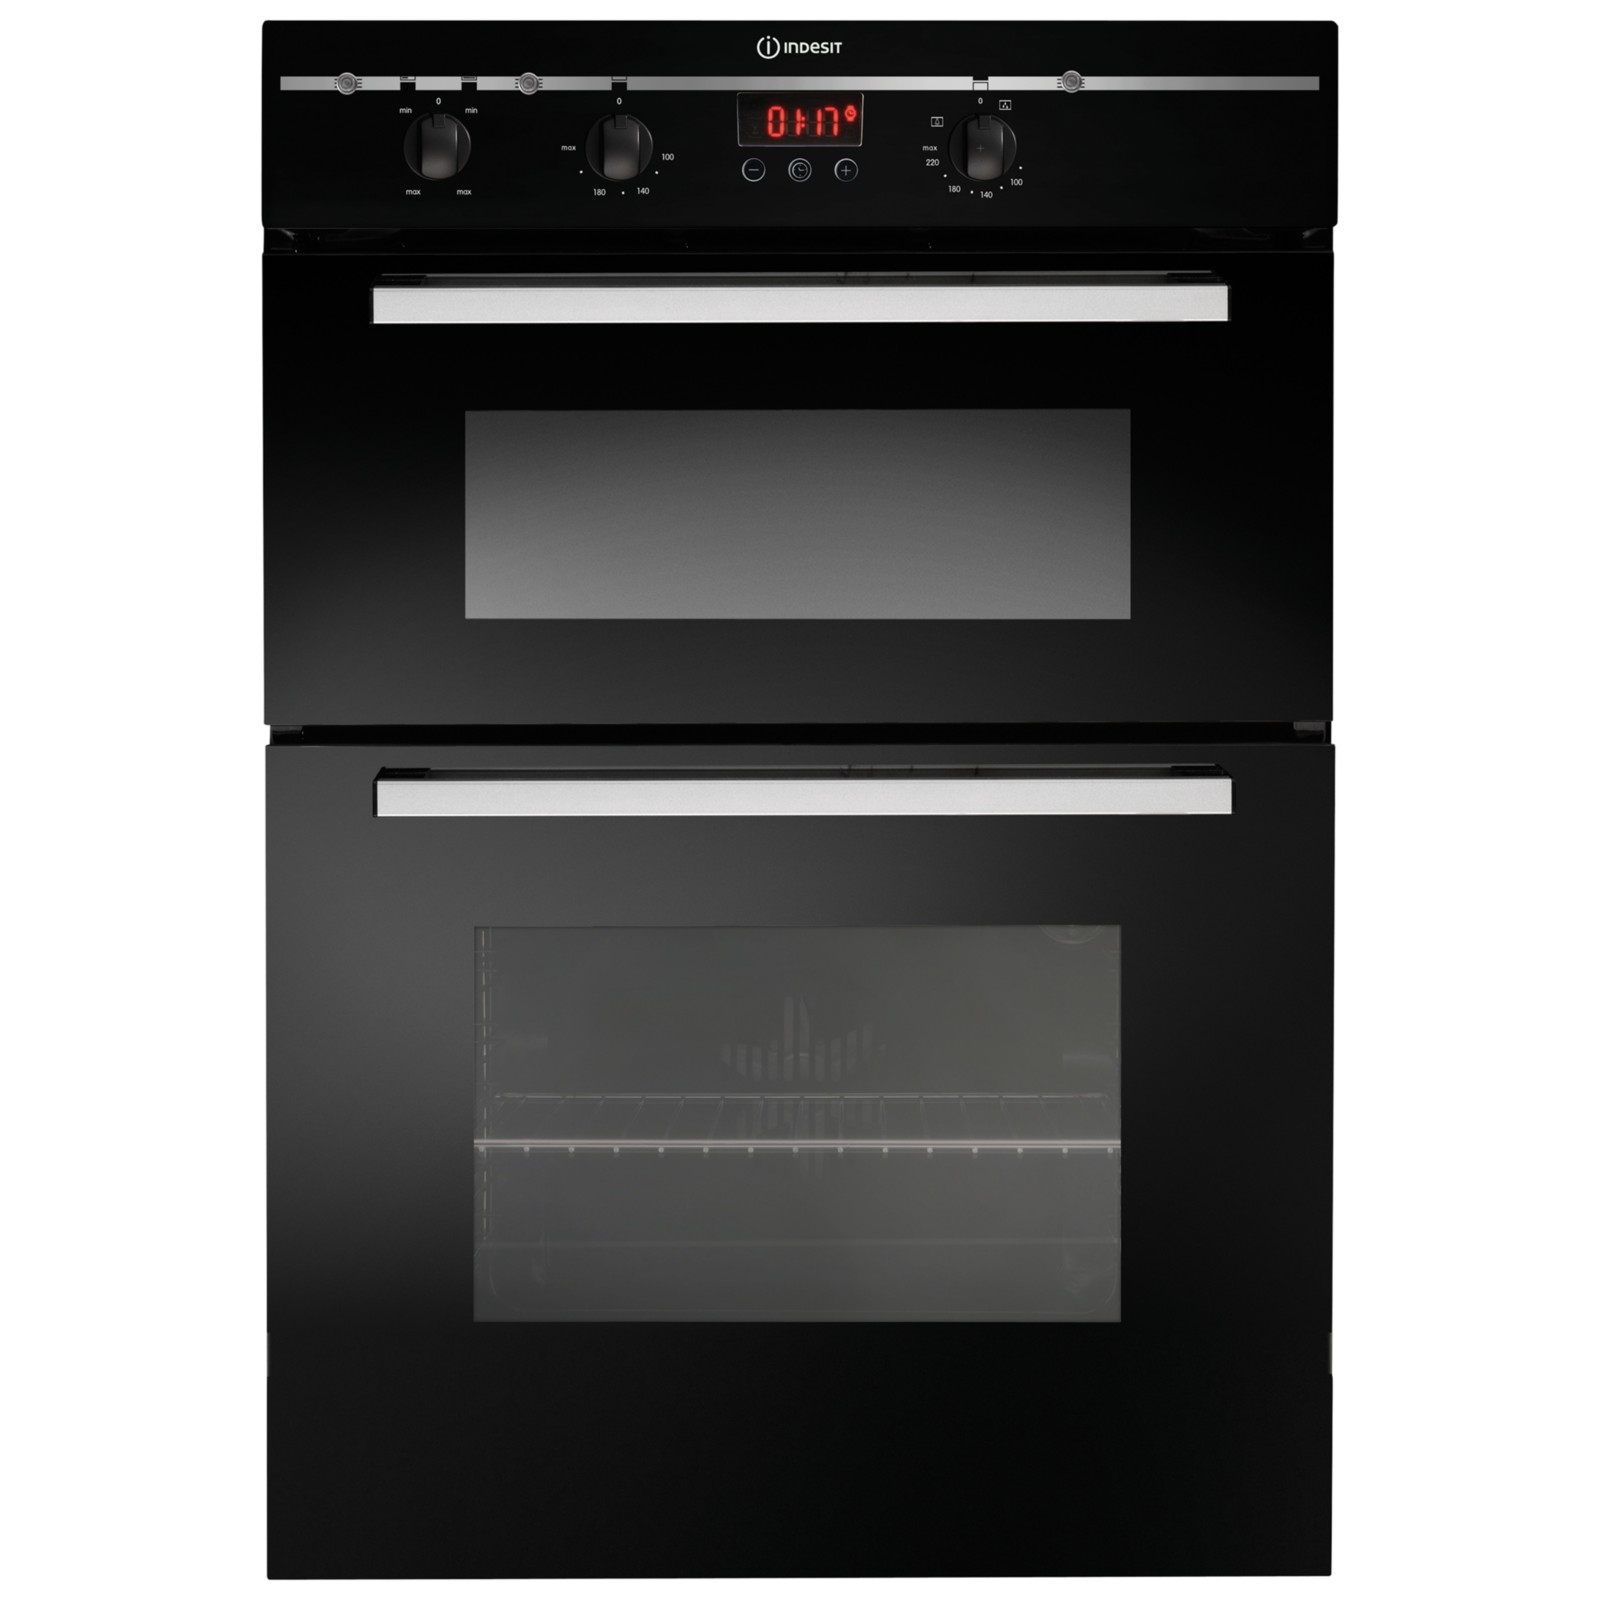 Indesit FIMD23BKS Double Electric Oven